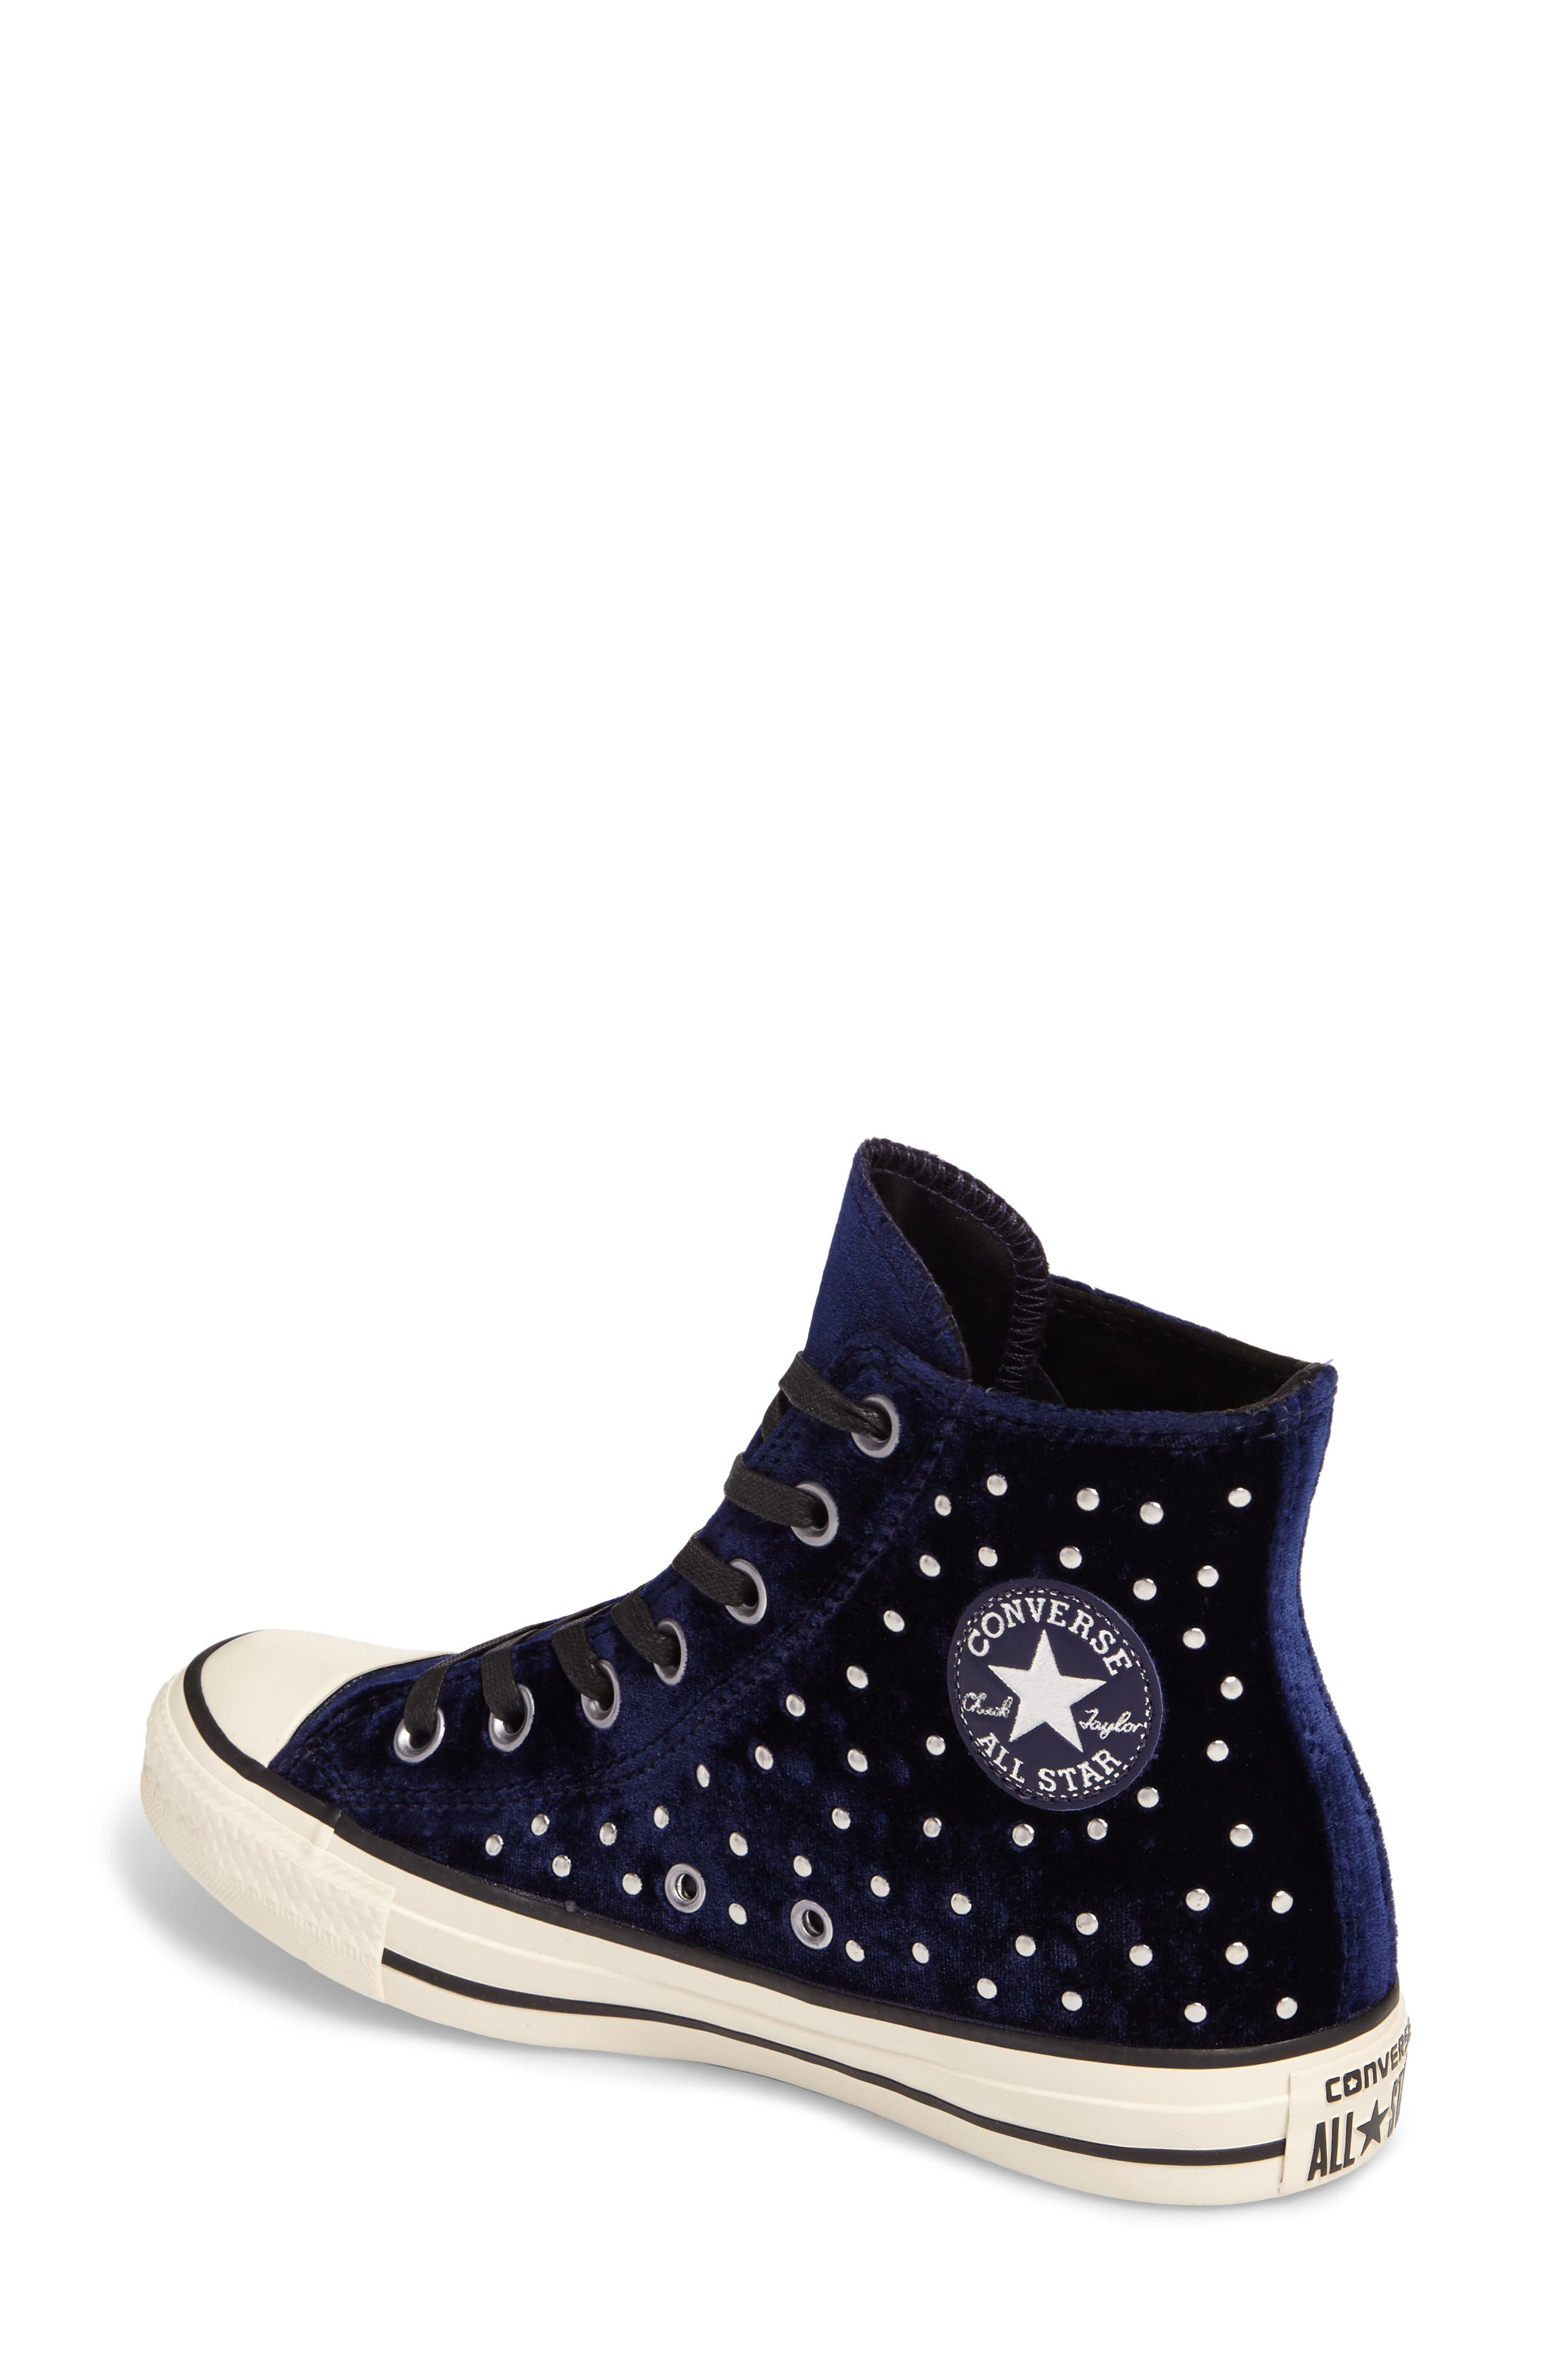 Chuck Taylor<sup>®</sup> All Star<sup>®</sup> Studded High Top Sneakers,                             Alternate thumbnail 2, color,                             Eclipse Velvet